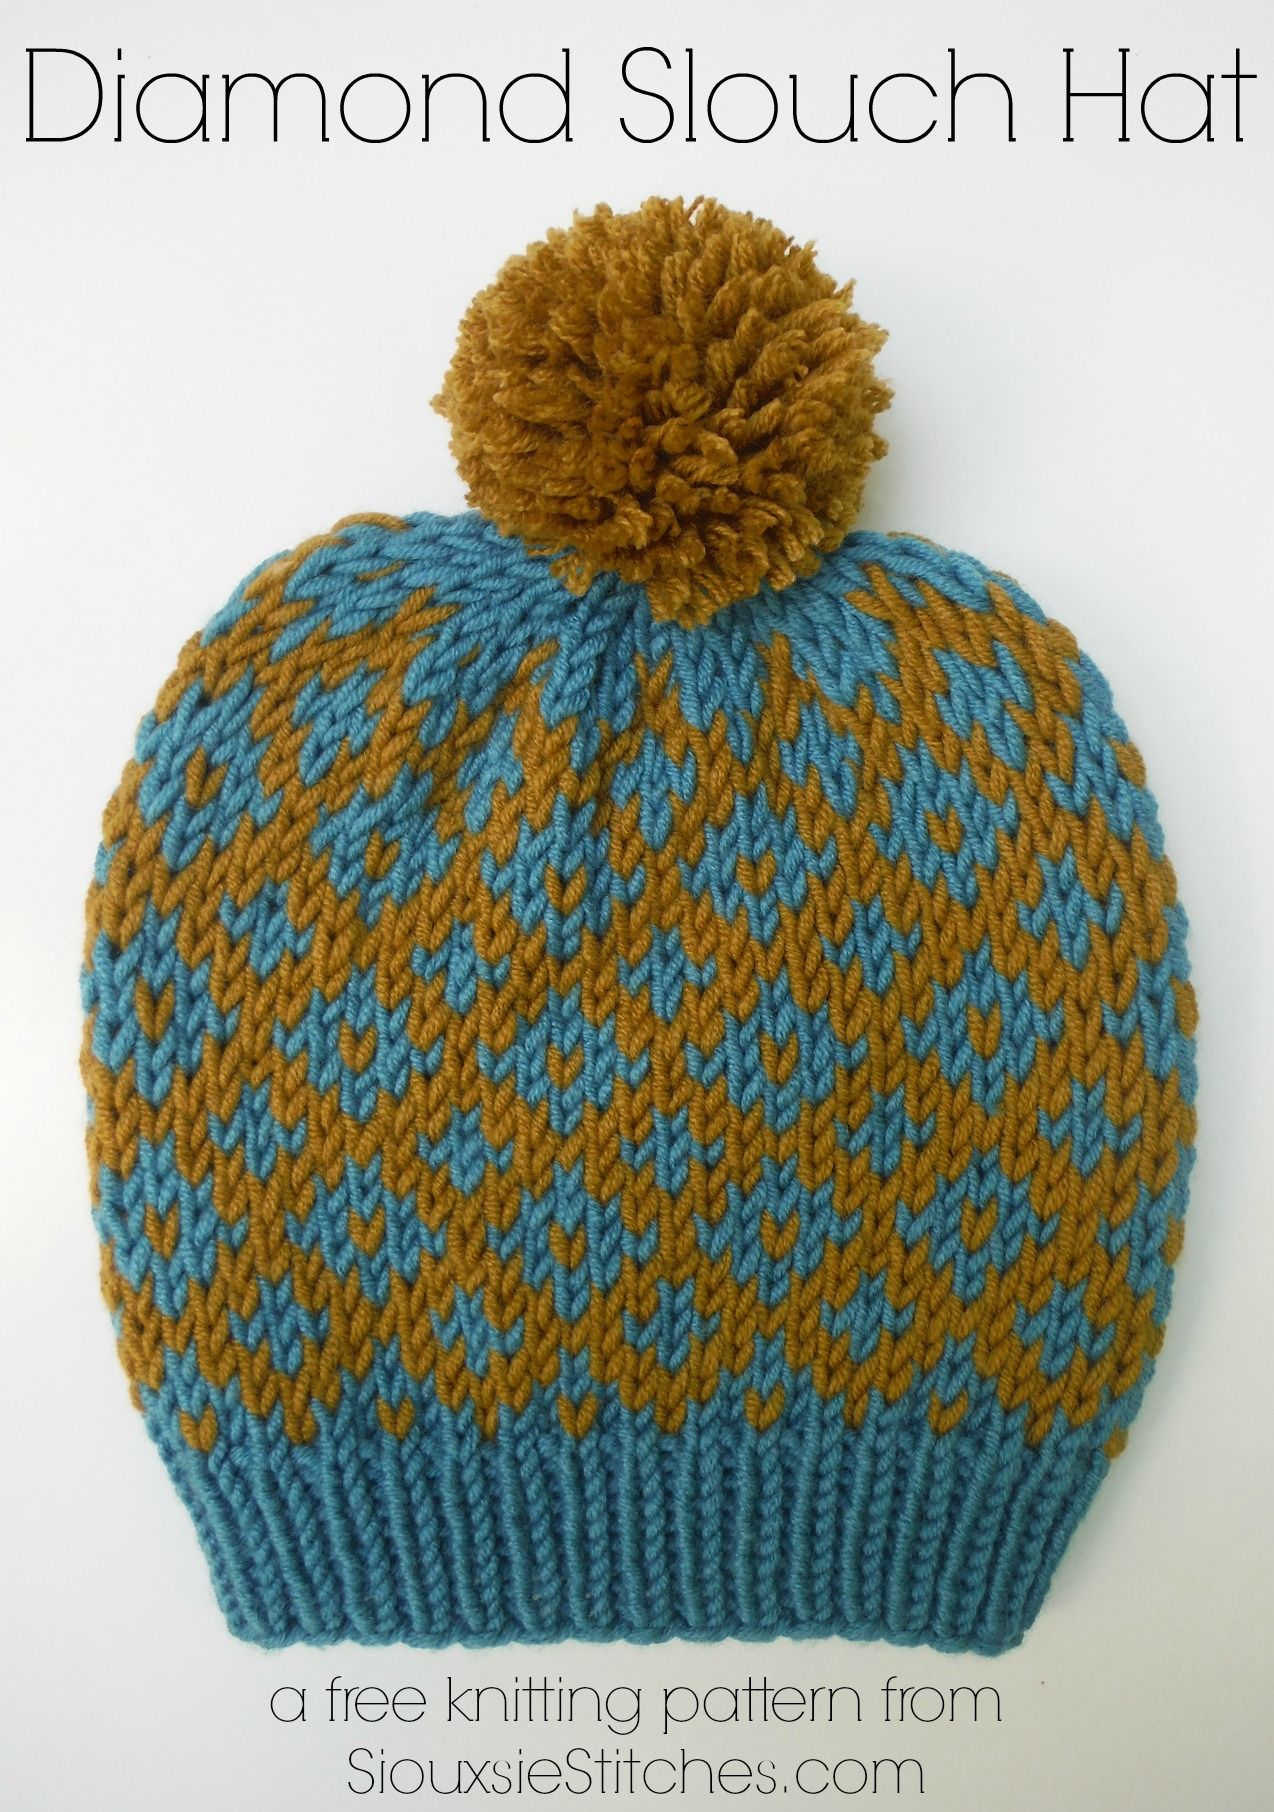 Free knitting pattern for a cute and modern diamond slouch hat from ...